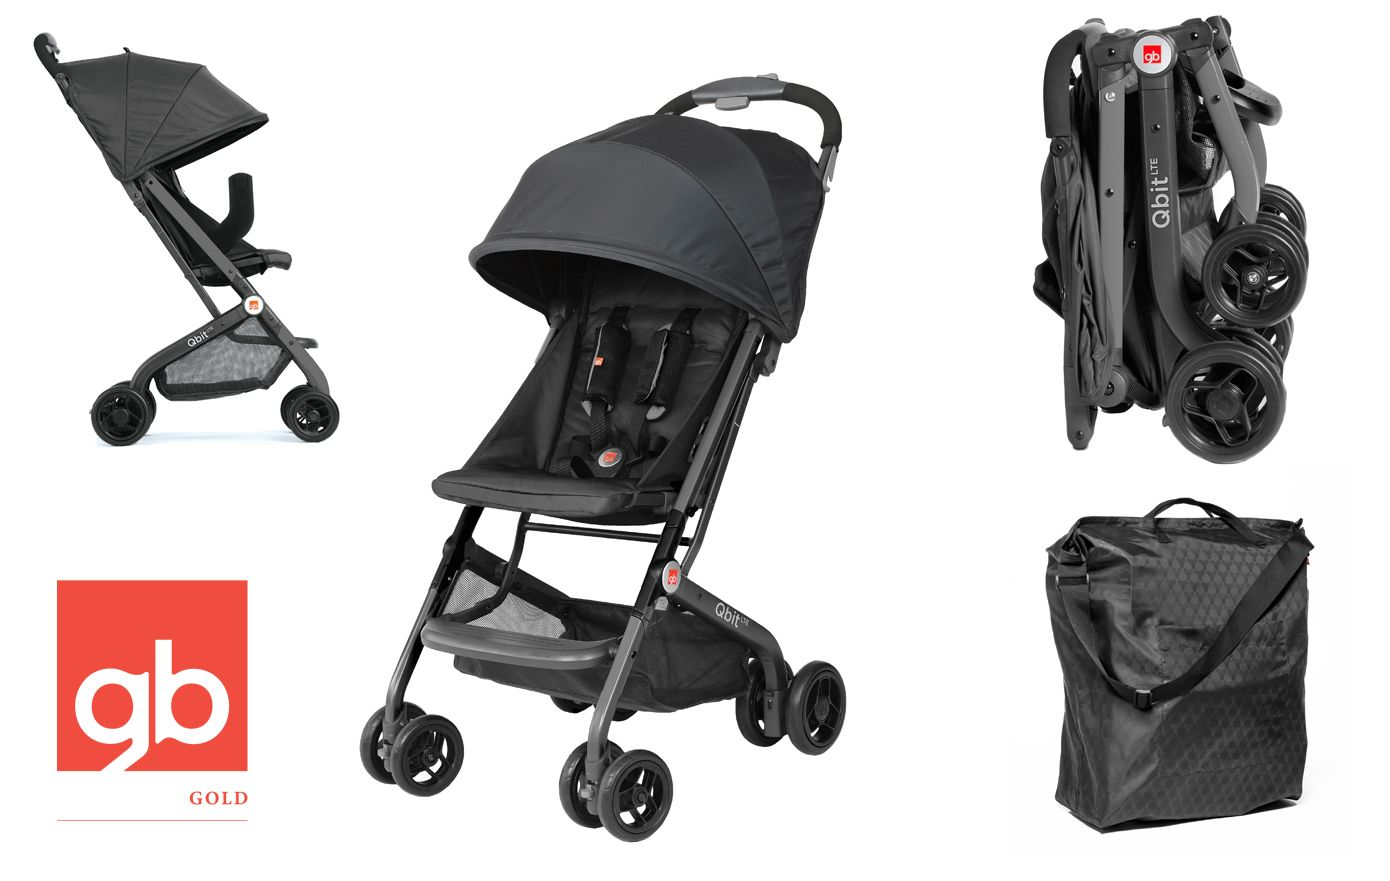 (Ended) Qbit LTE Compact Stroller Giveaway Lightweight